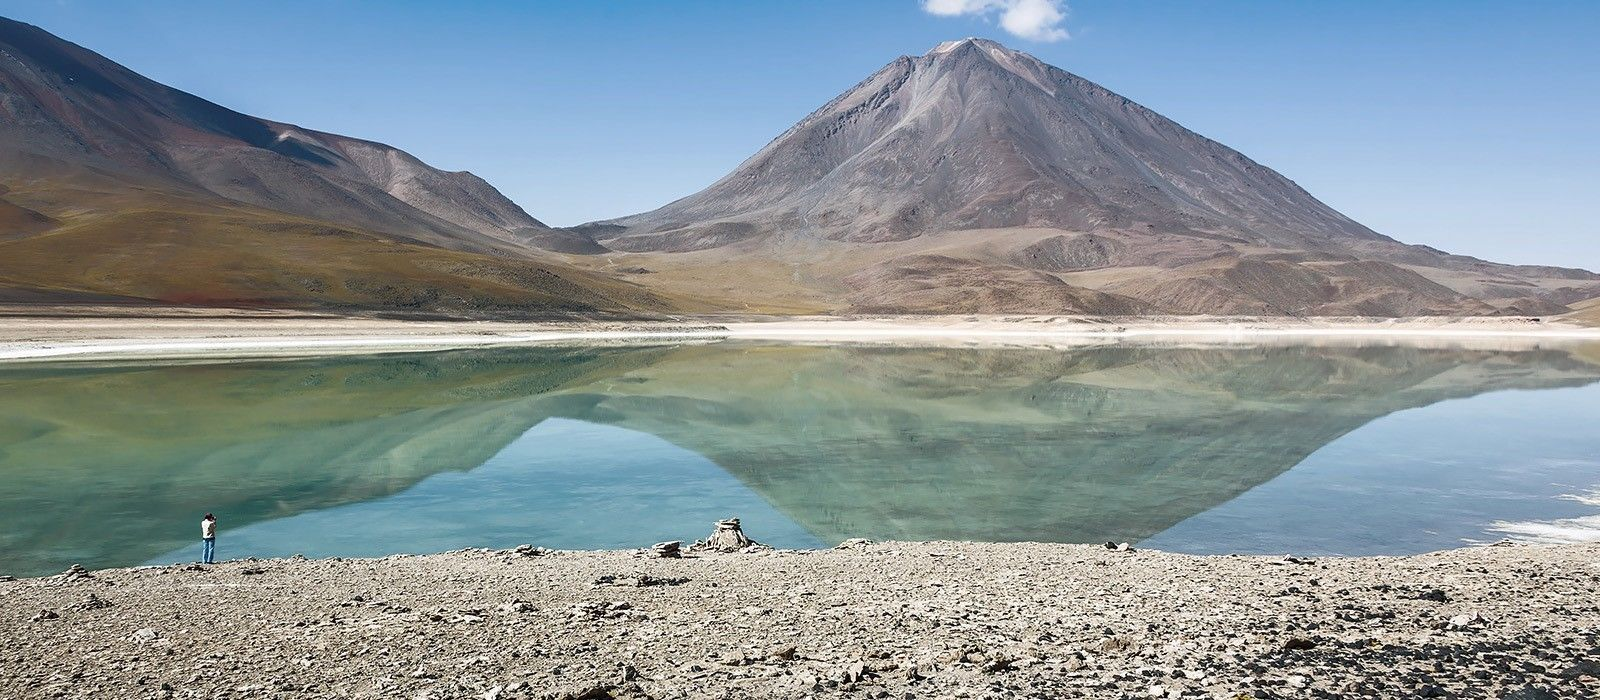 Bolivia: Landscapes and Culture Tour Trip 5